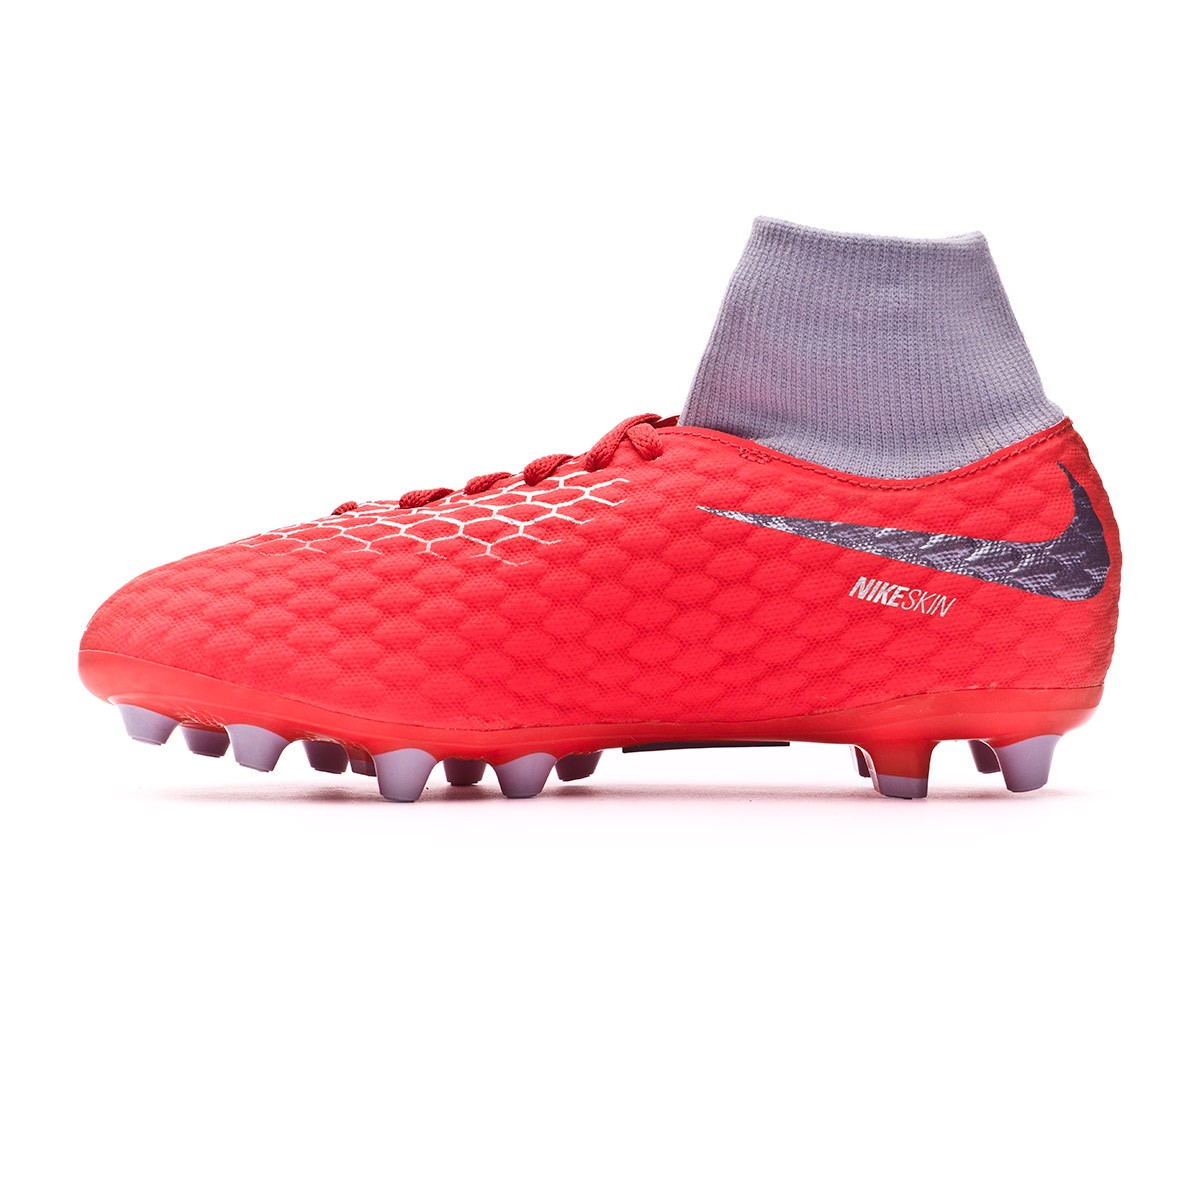 Boot Nike Hypervenom Phantom III Academy DF AG-Pro Niño Light  crimson-Metallic dark grey-Wolf grey - Leaked soccer f2912fcd13